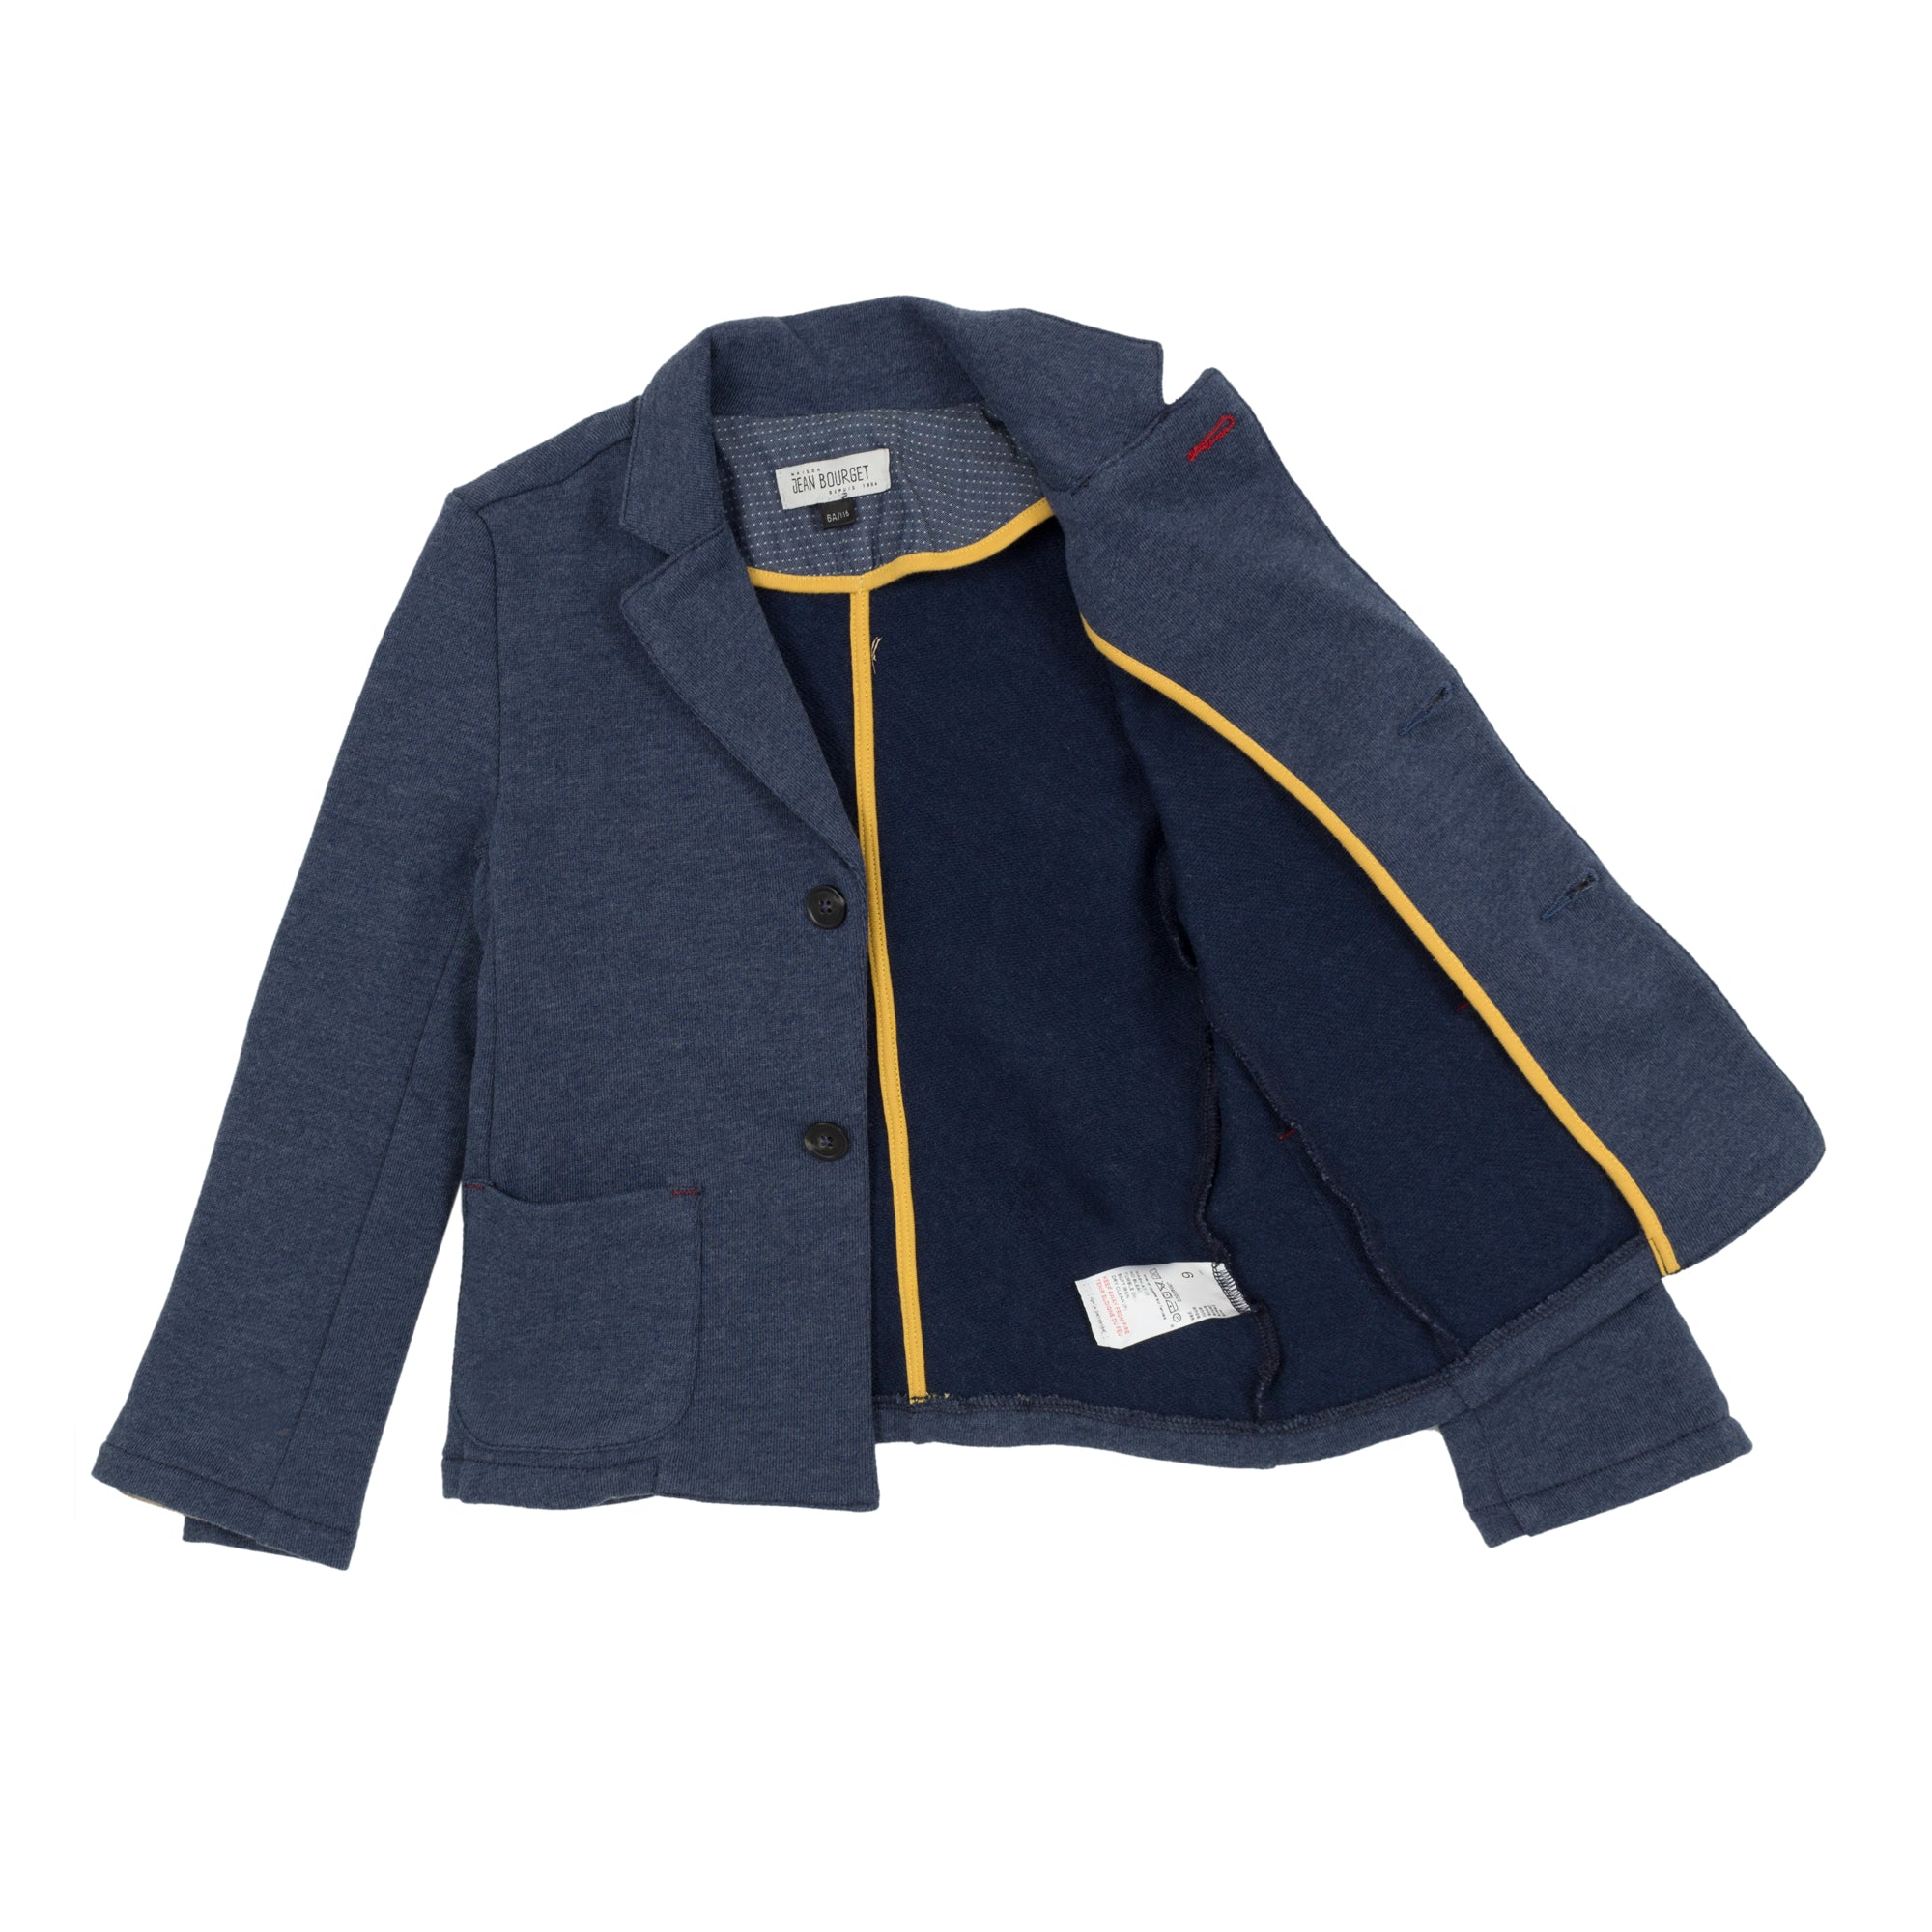 Boy's Blue Blazer